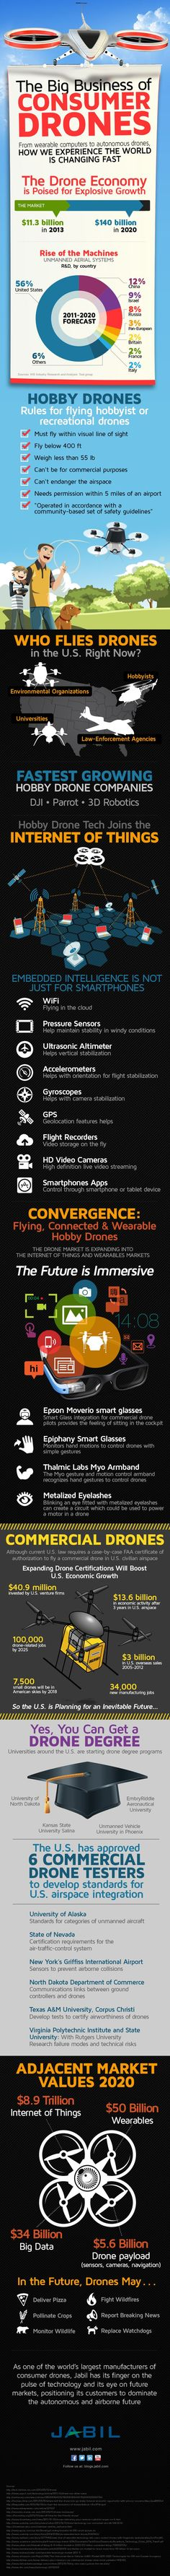 The Drone Consumer Revolution -The big business of consumer drones .. how we experience the world is changing fast. [Future Drones: http://futuristicnews.com/tag/drone/ Drones for Sale: http://futuristicshop.com/tag/drone/]